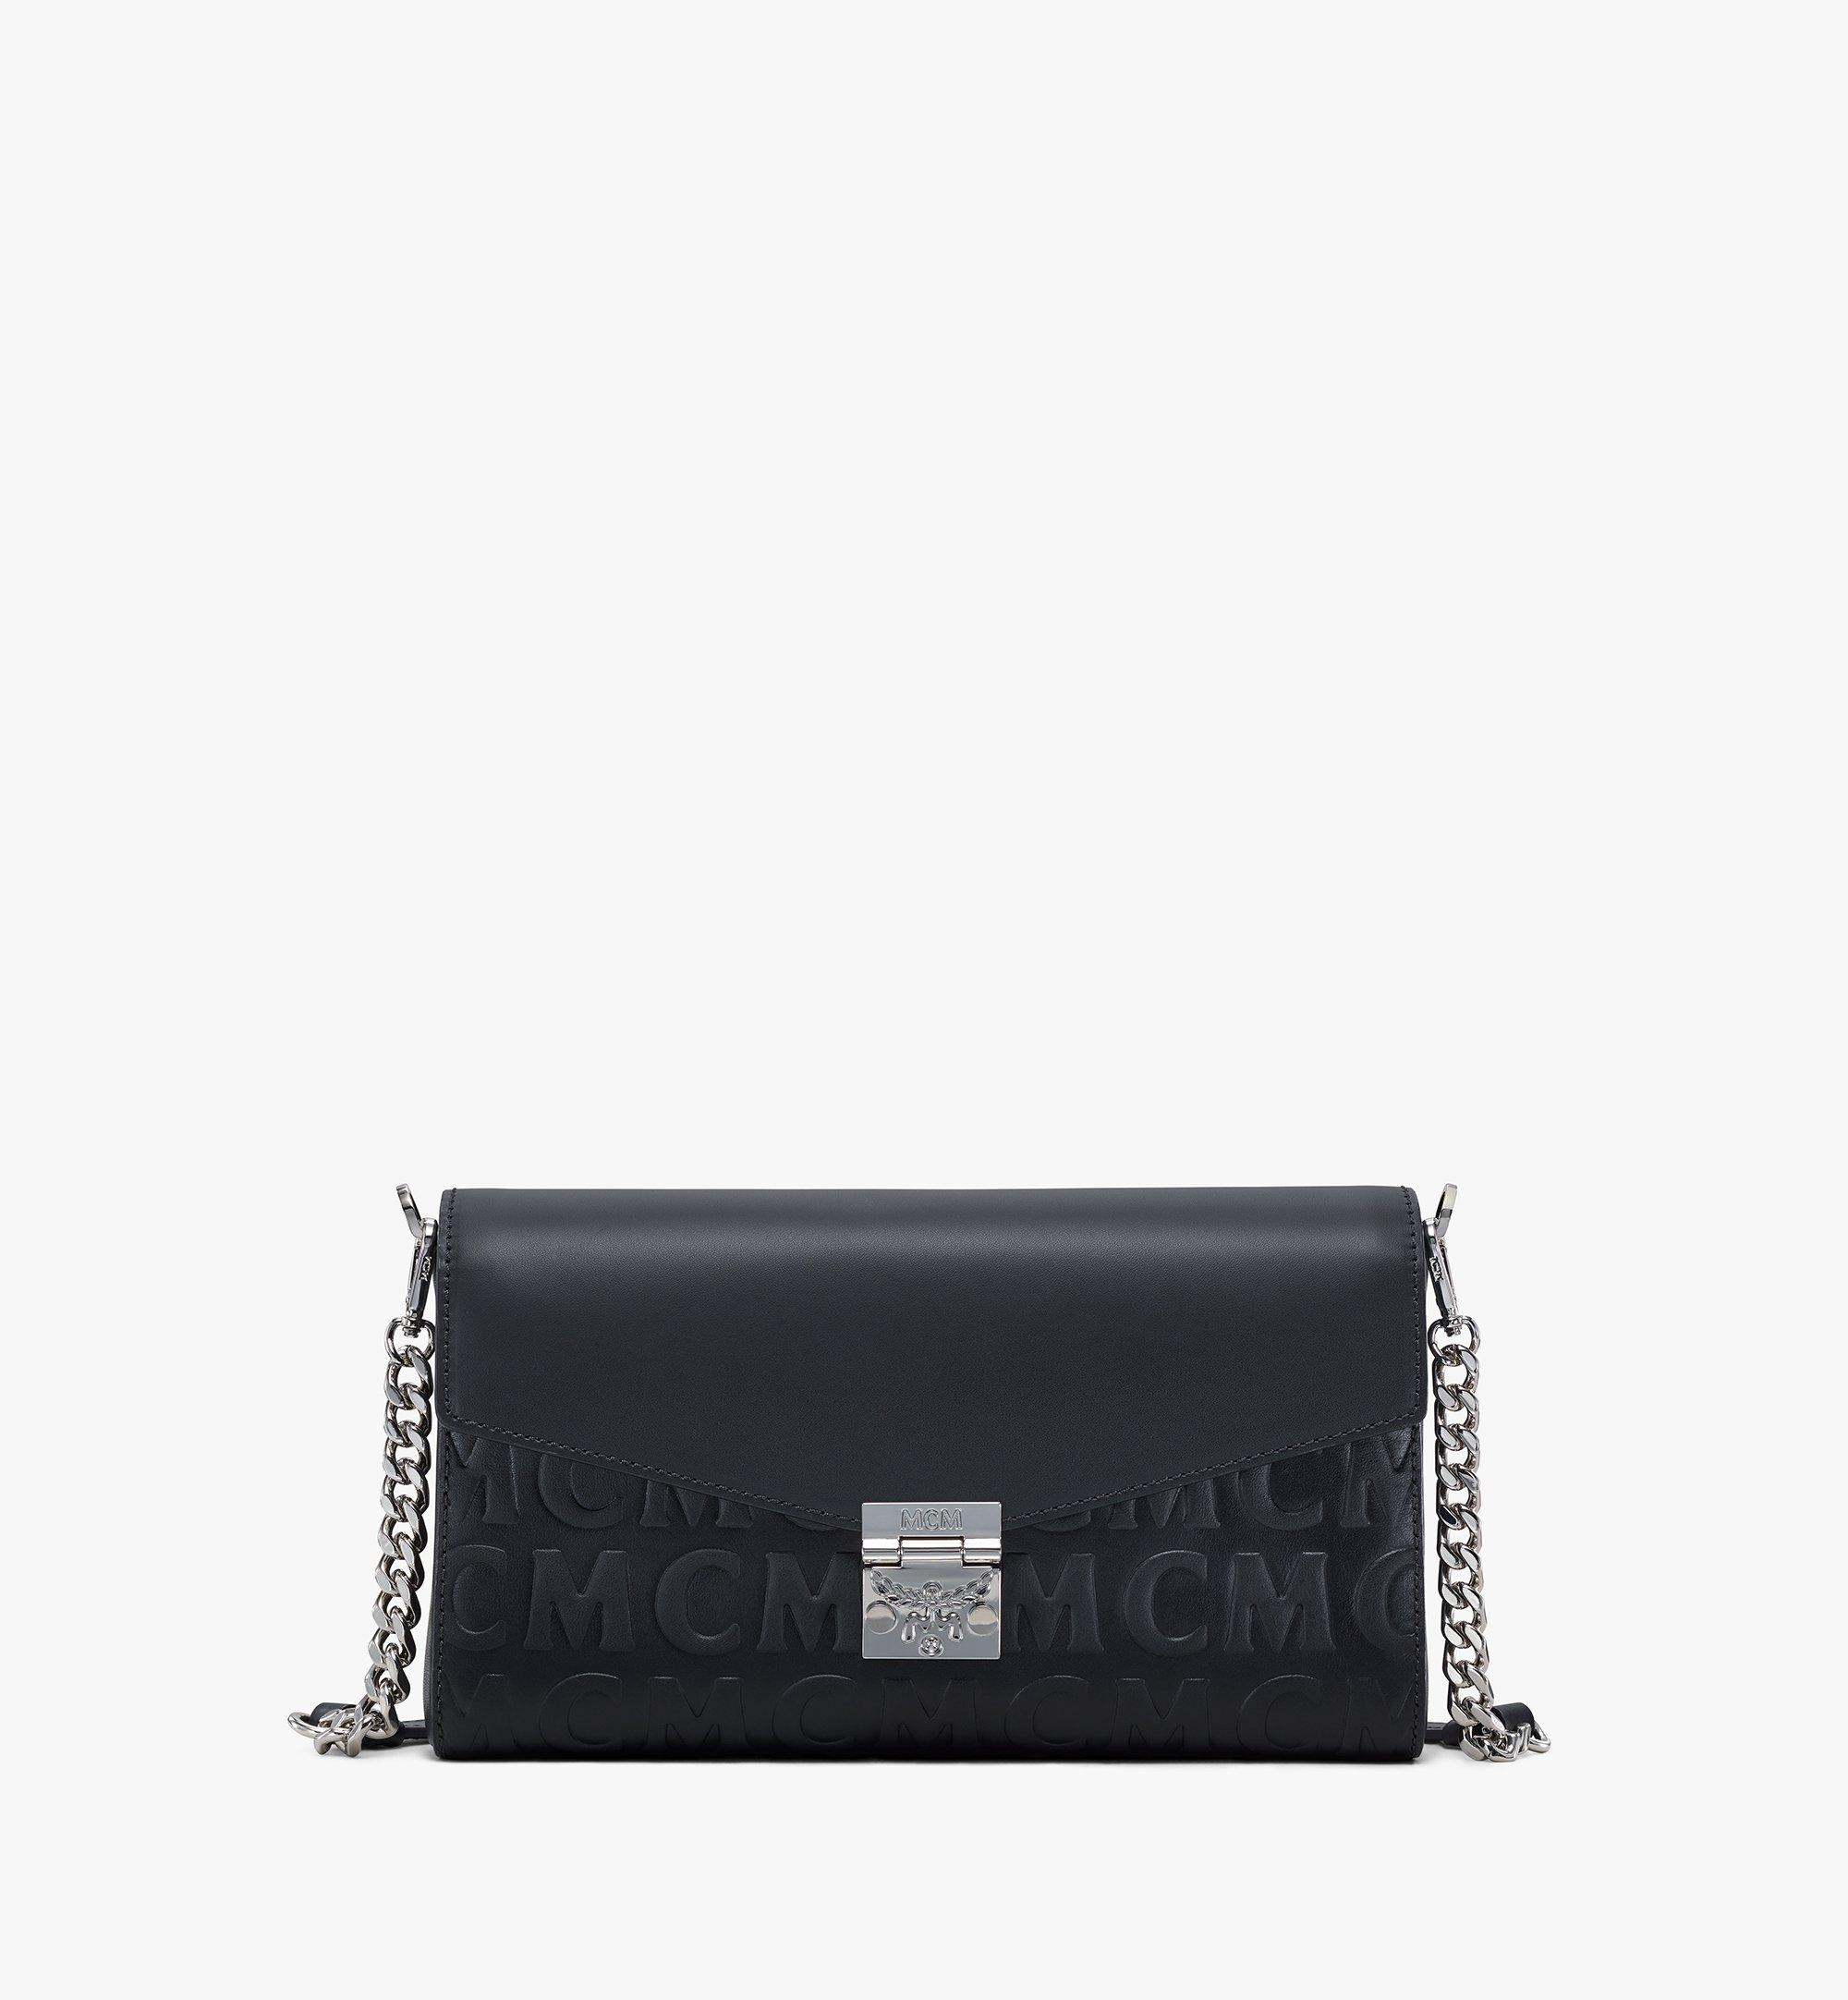 MCM Millie Crossbody in MCM Monogram Leather Black MWRAAME10BK001 Alternate View 1